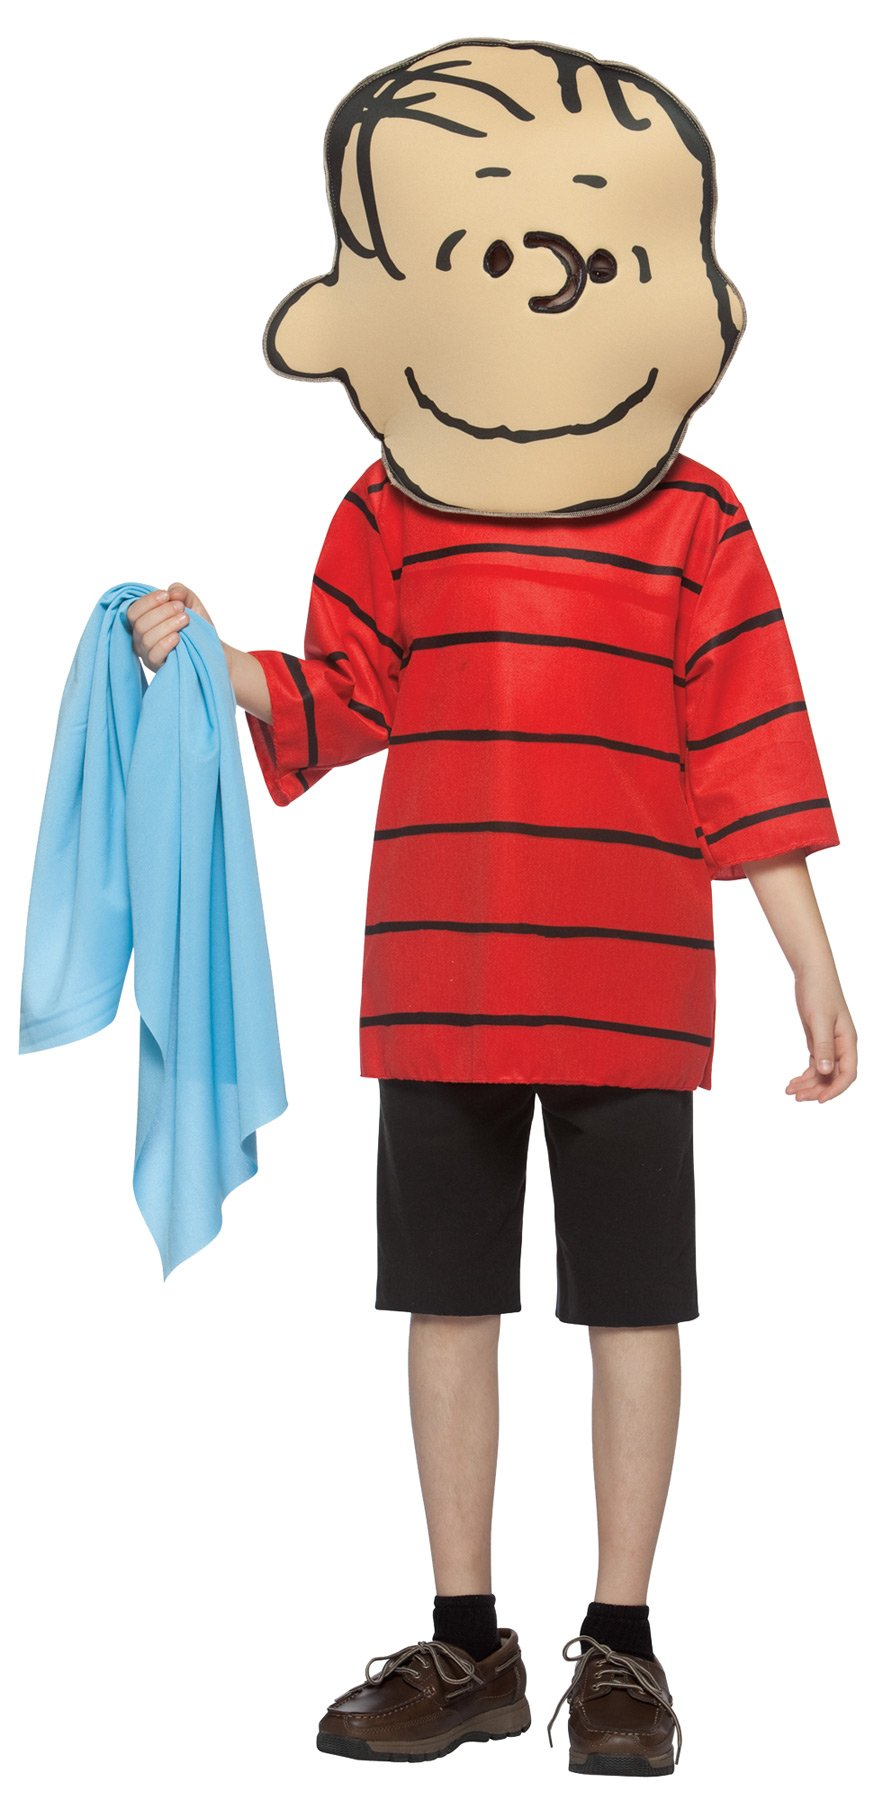 peanuts linus boys costume 7-10 | products in 2018 | pinterest